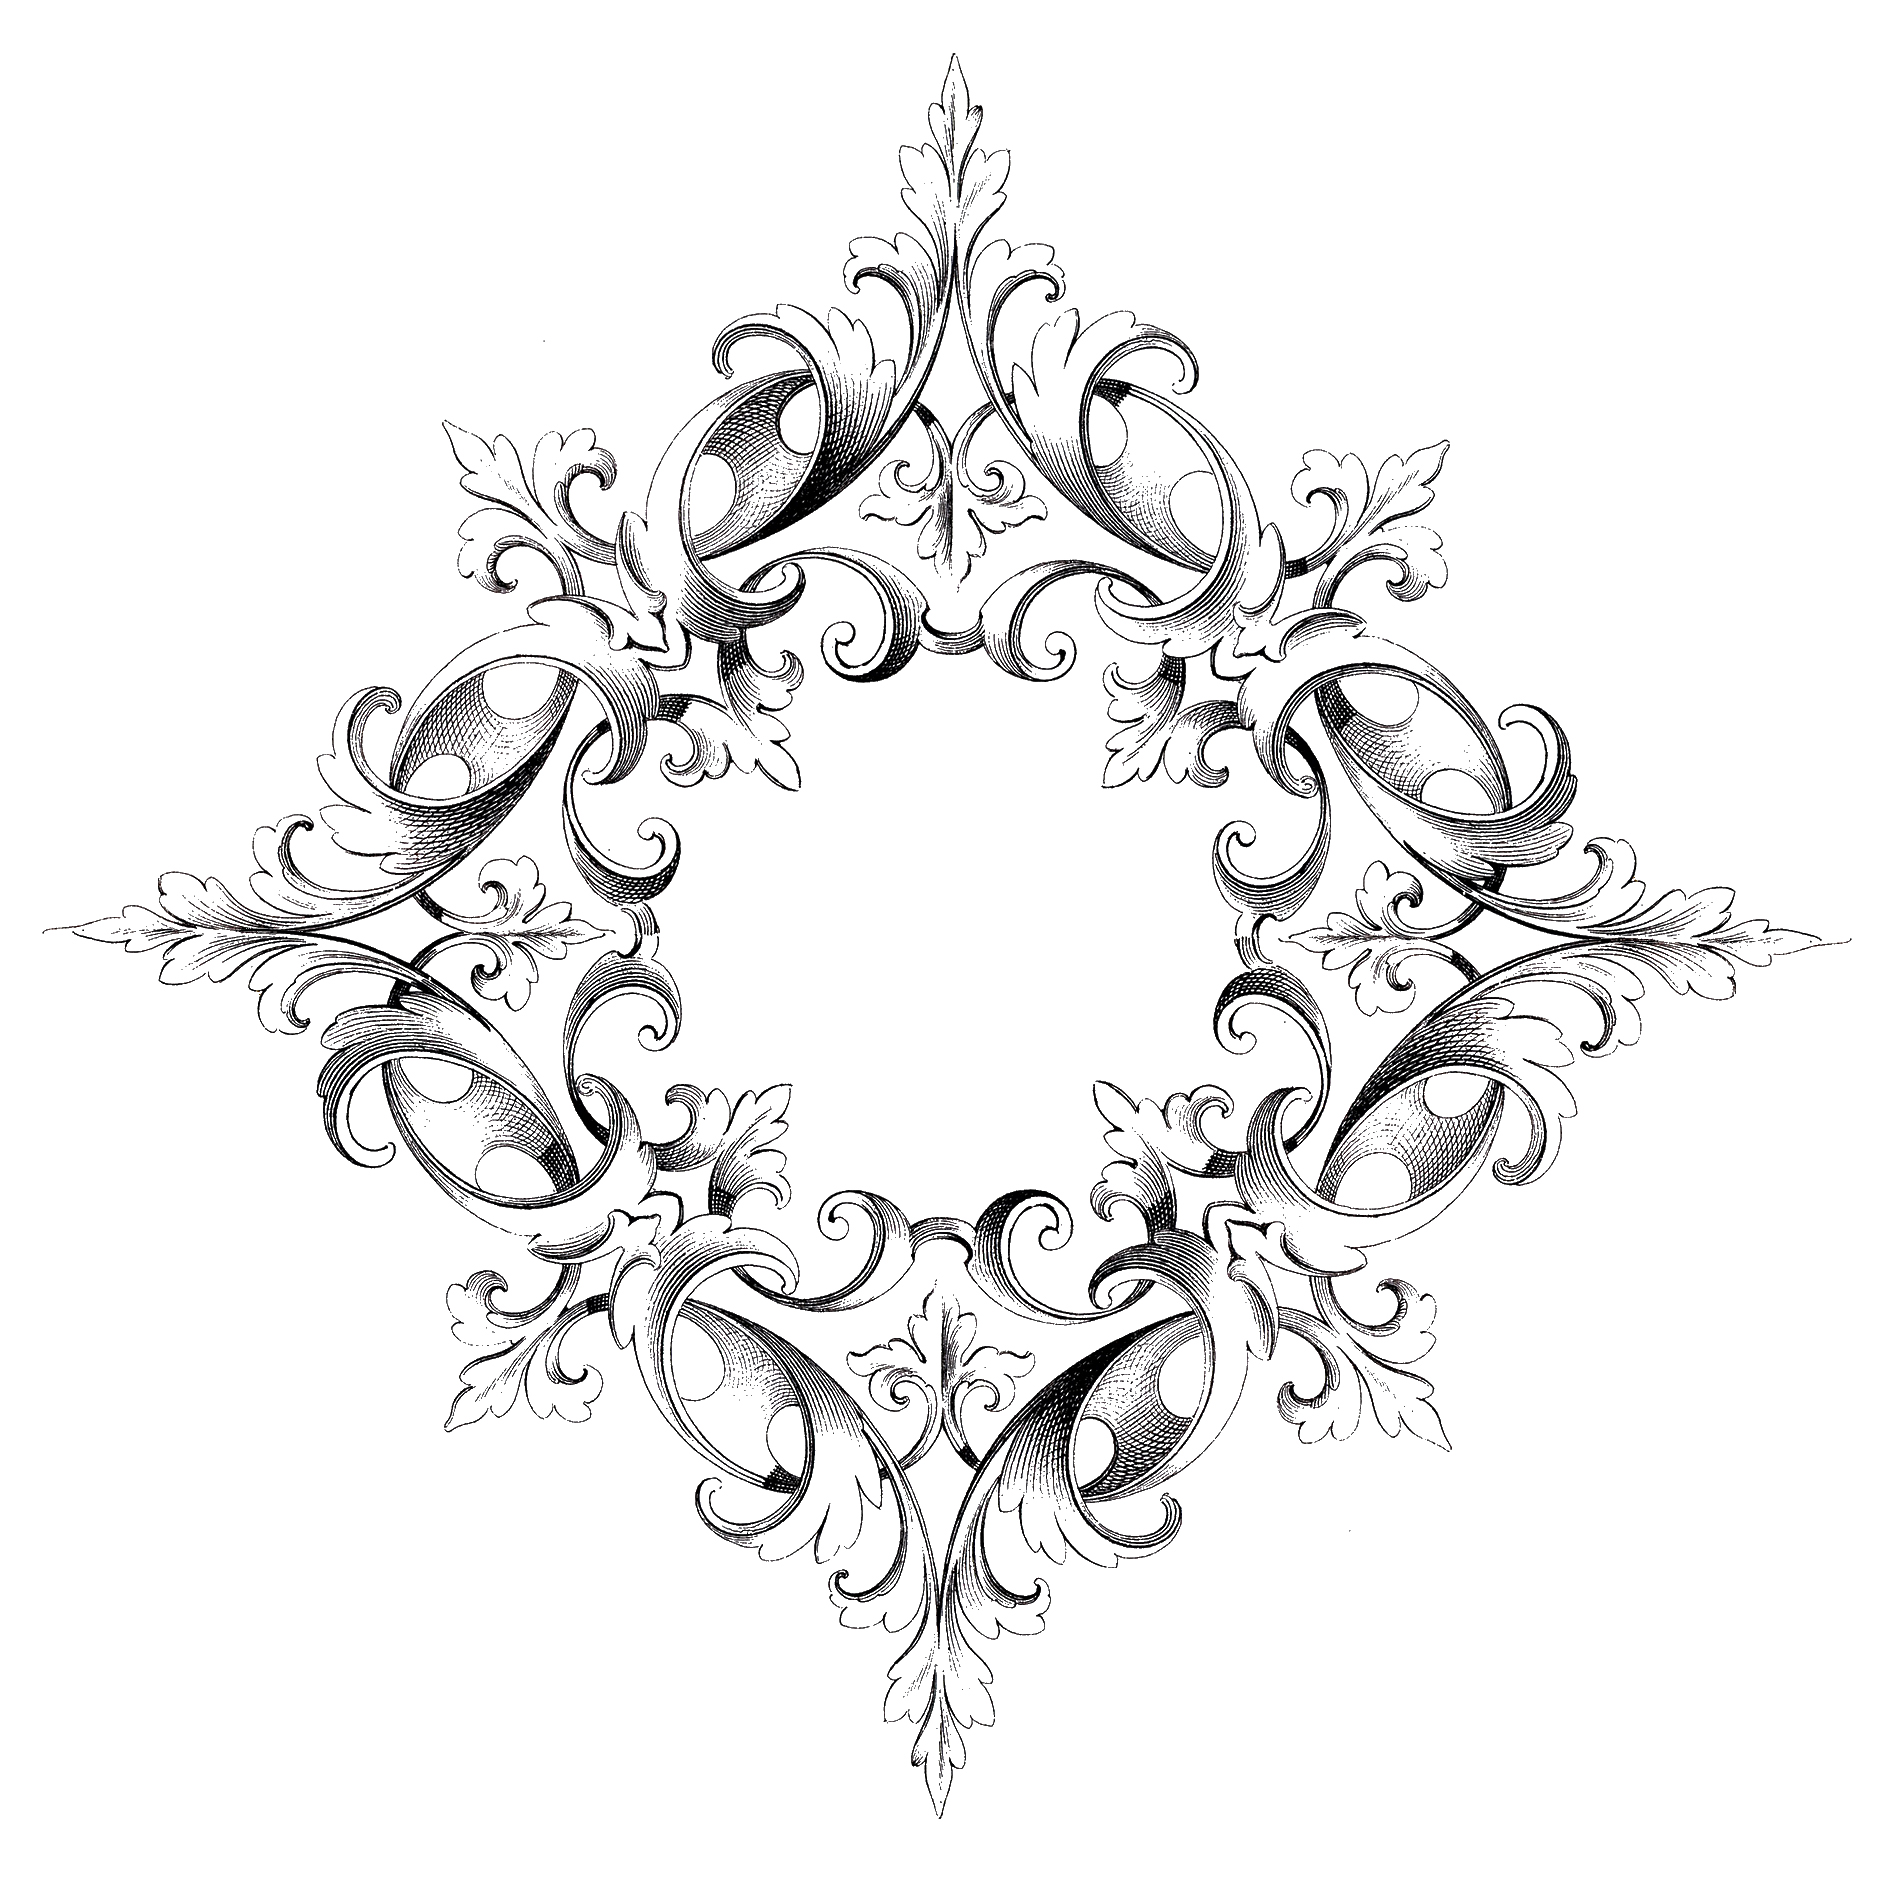 Scroll Drawing: Spectacular Scroll Frame Image!